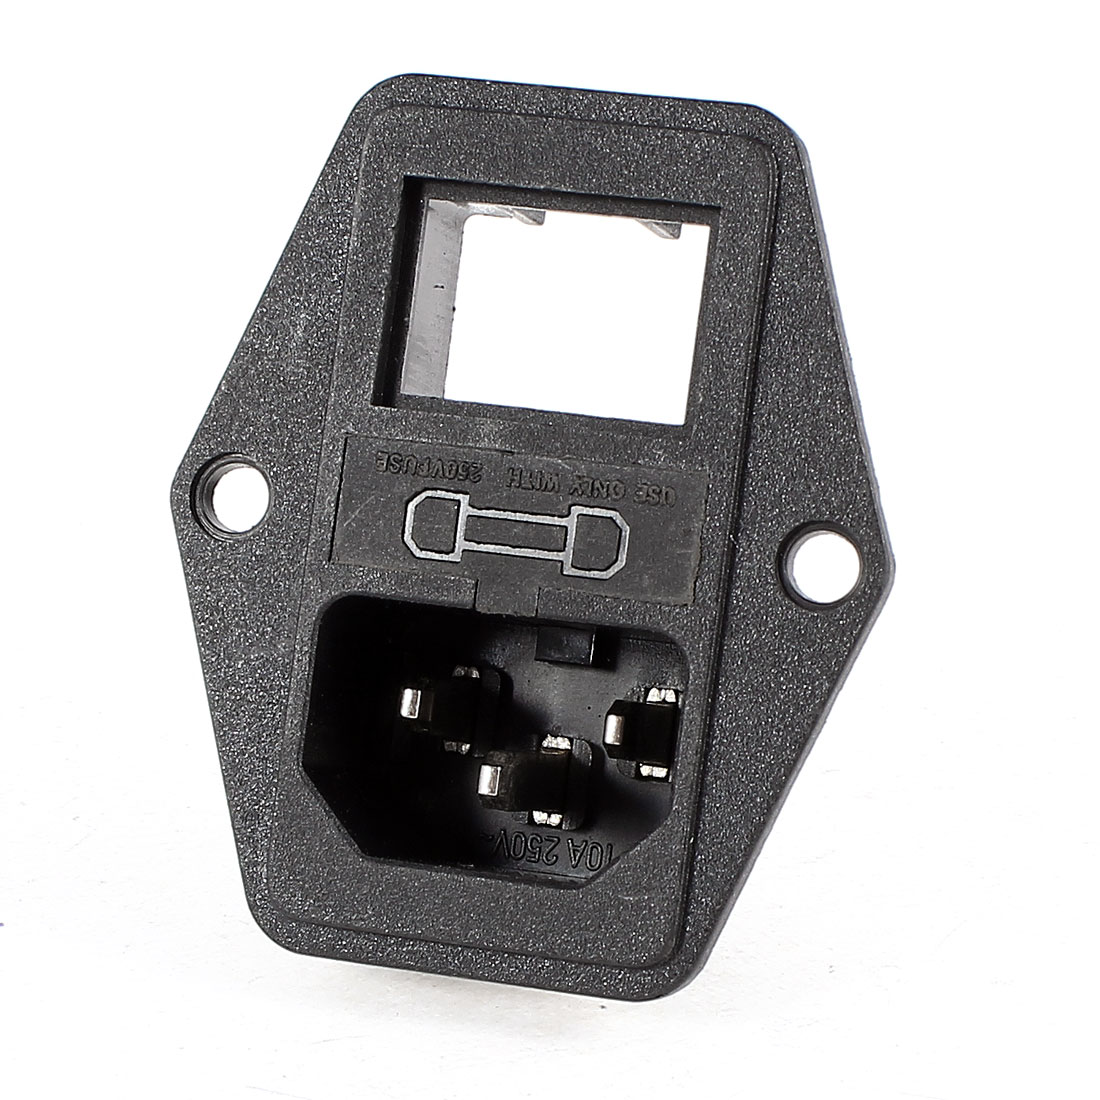 AC 250V IEC320 C14 Power Socket Fuse Holder w Switch for Electric Rice Cooker